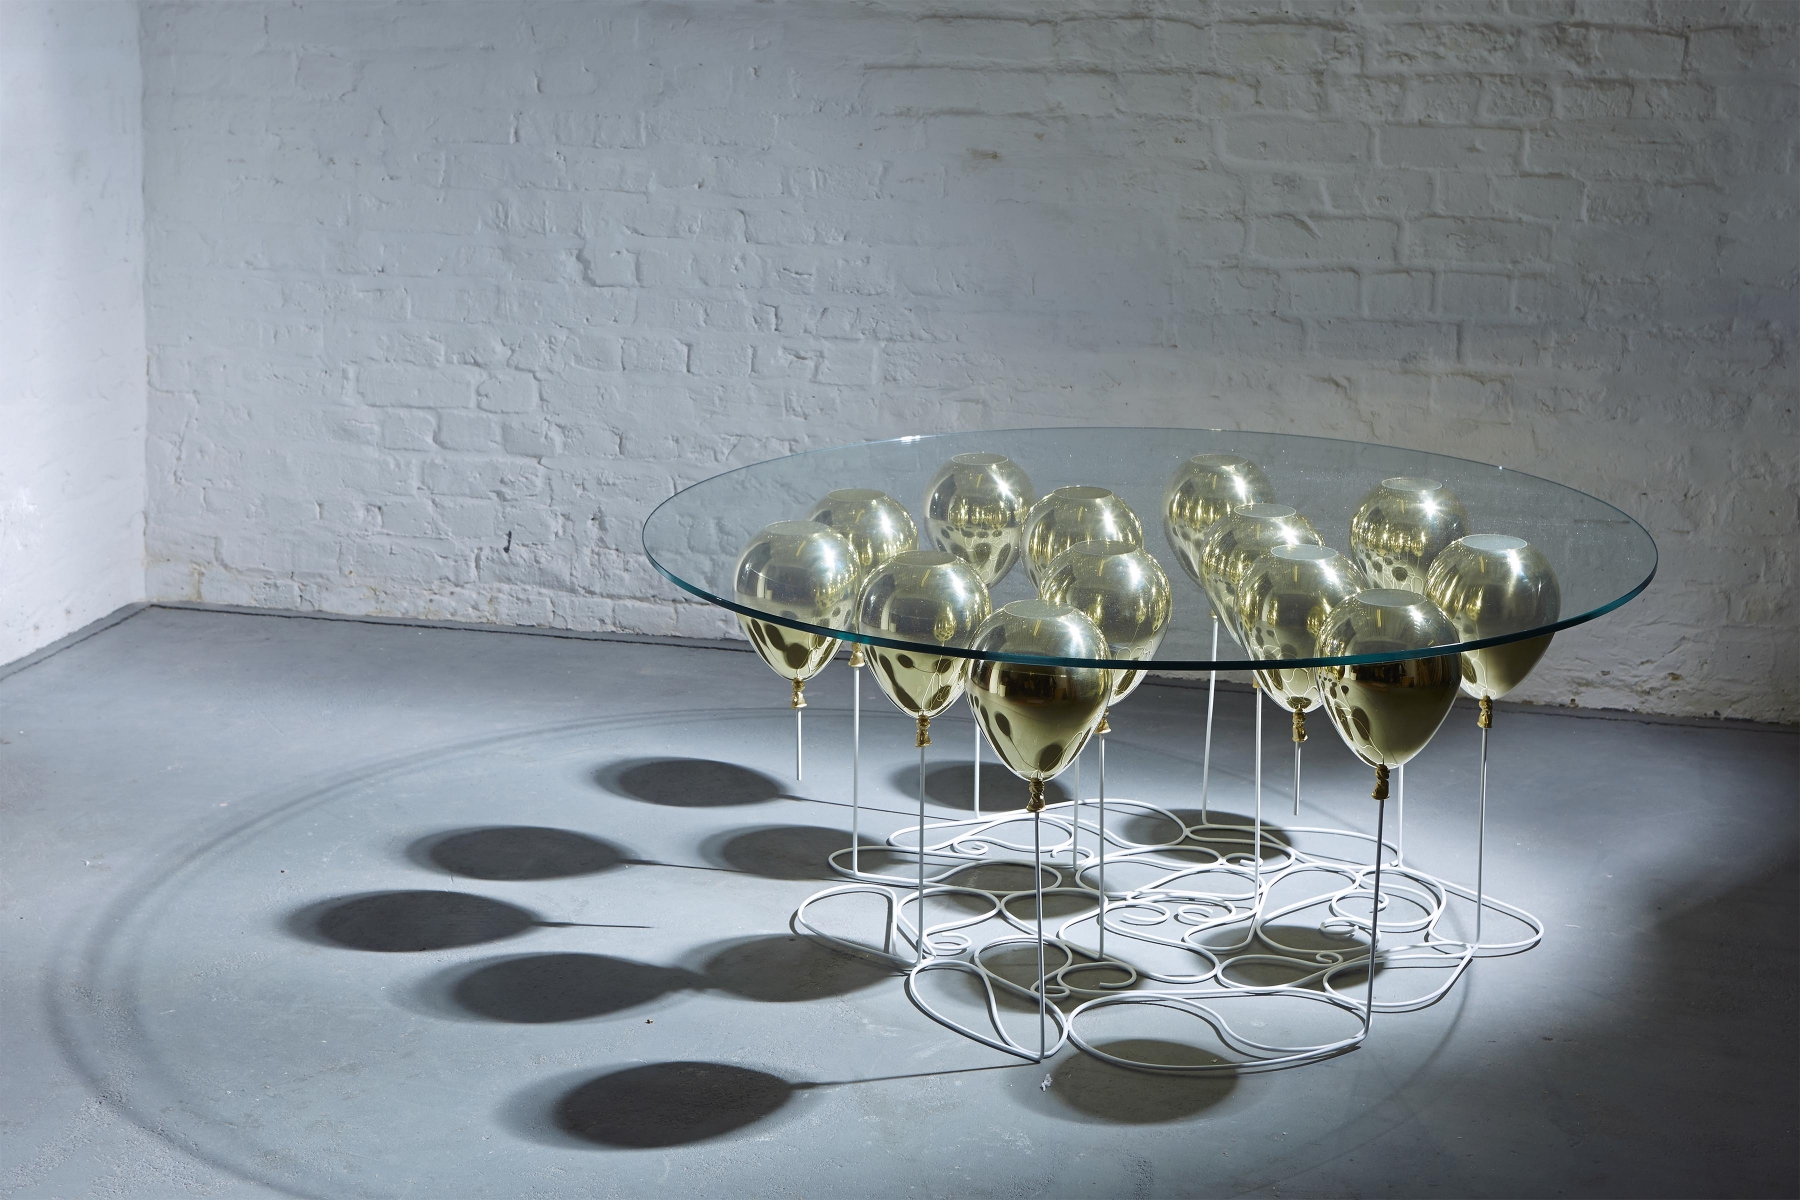 up ballon coffee table designs Out Of Ordinary Must-Have Coffee Table Designs 10 Uniquely Beautiful Coffee Tables 8